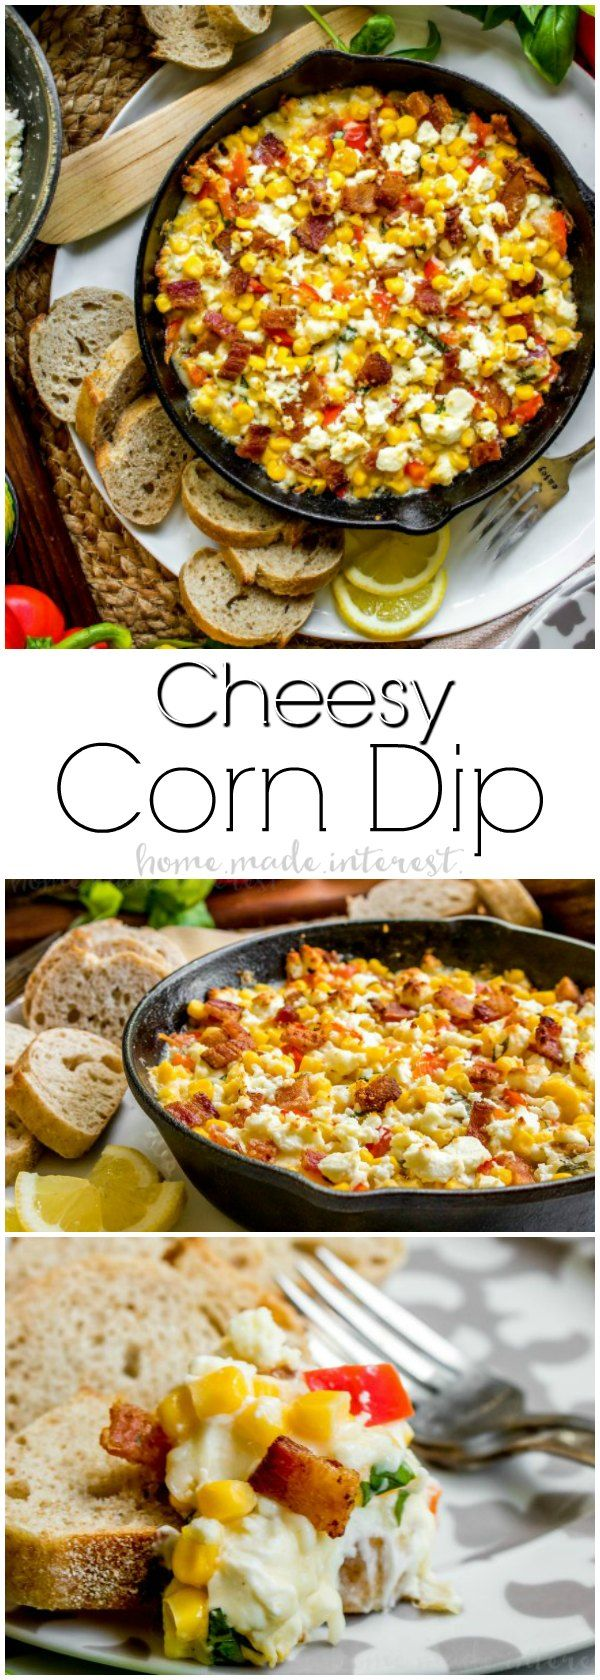 Cheesy Corn Dip   This Cheesy Corn Dip recipe is stuffed full of bacon, three types of cheeses, and sweet corn. It is a hot corn dip recipe that makes great party food! Make this easy appetizer for all of your game day parties. Enjoy the football game with hot corn dip and your favorite crackers!  #ad #DelMonte